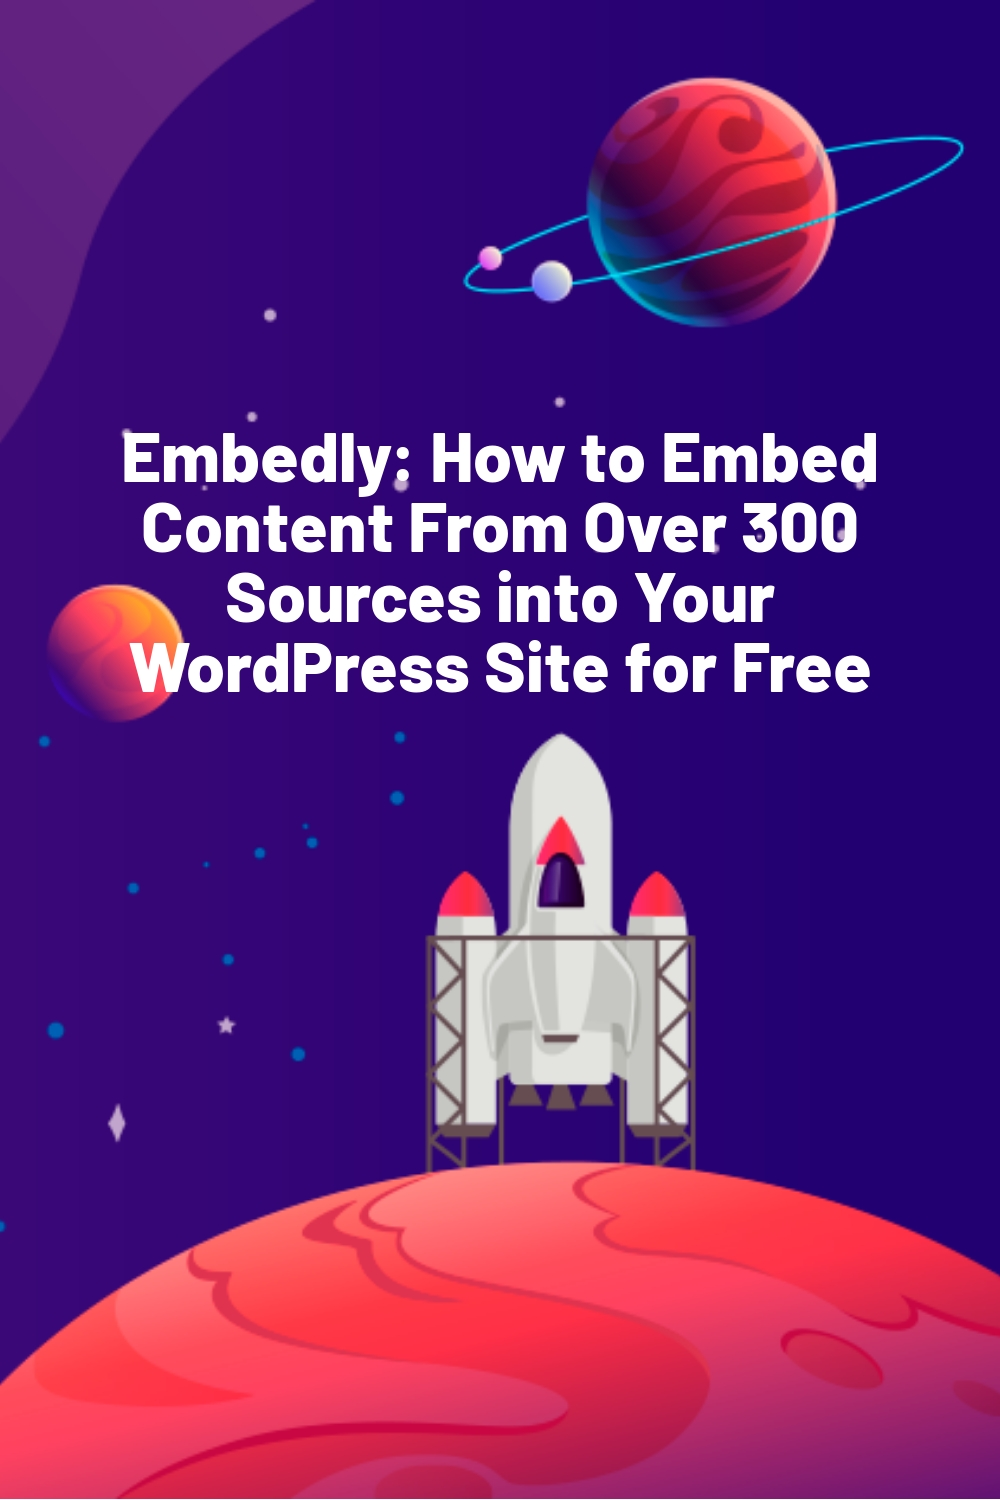 Embedly: How to Embed Content From Over 300 Sources into Your WordPress Site for Free